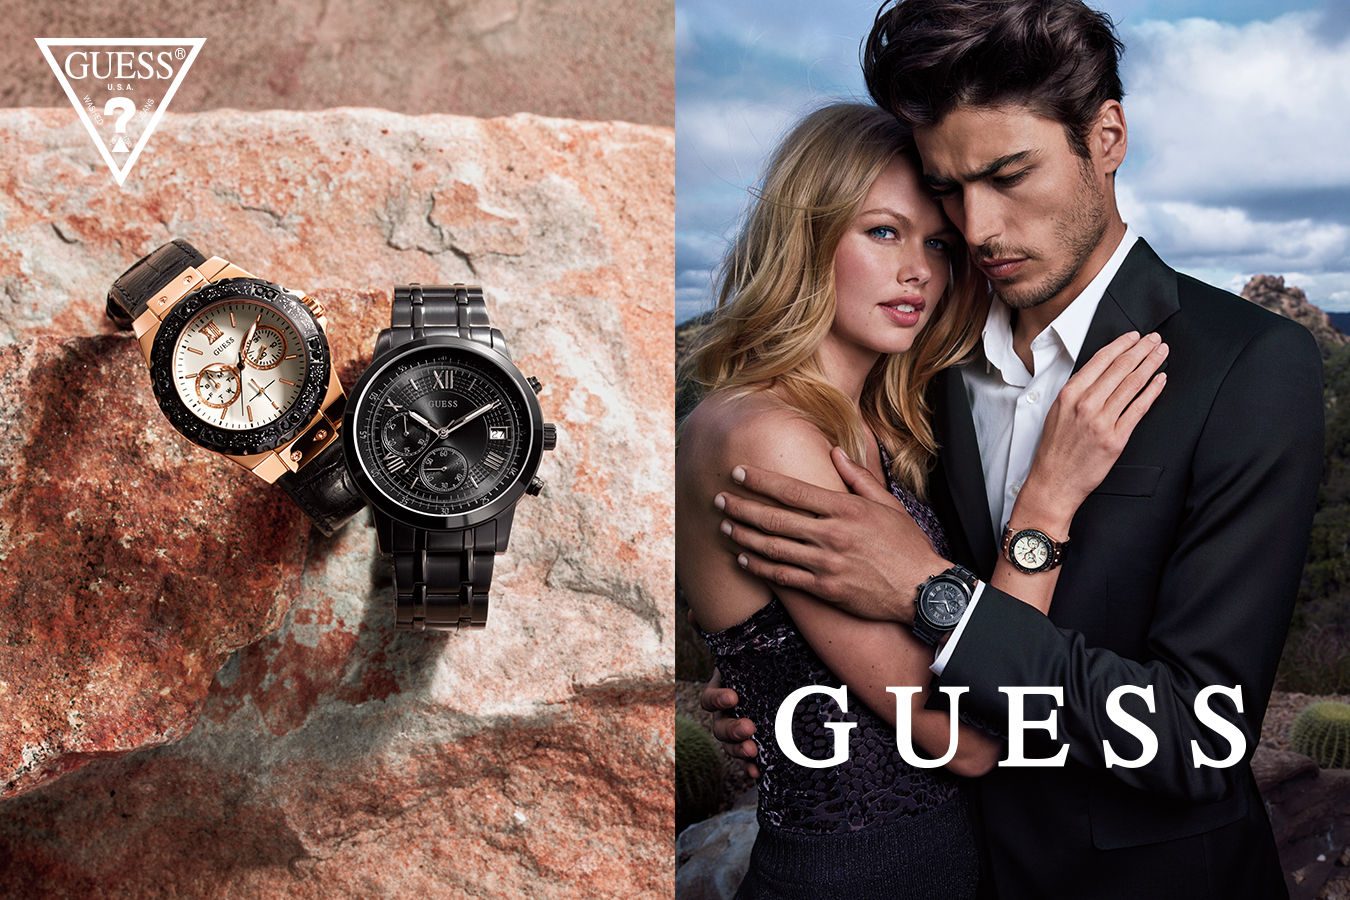 guess_2